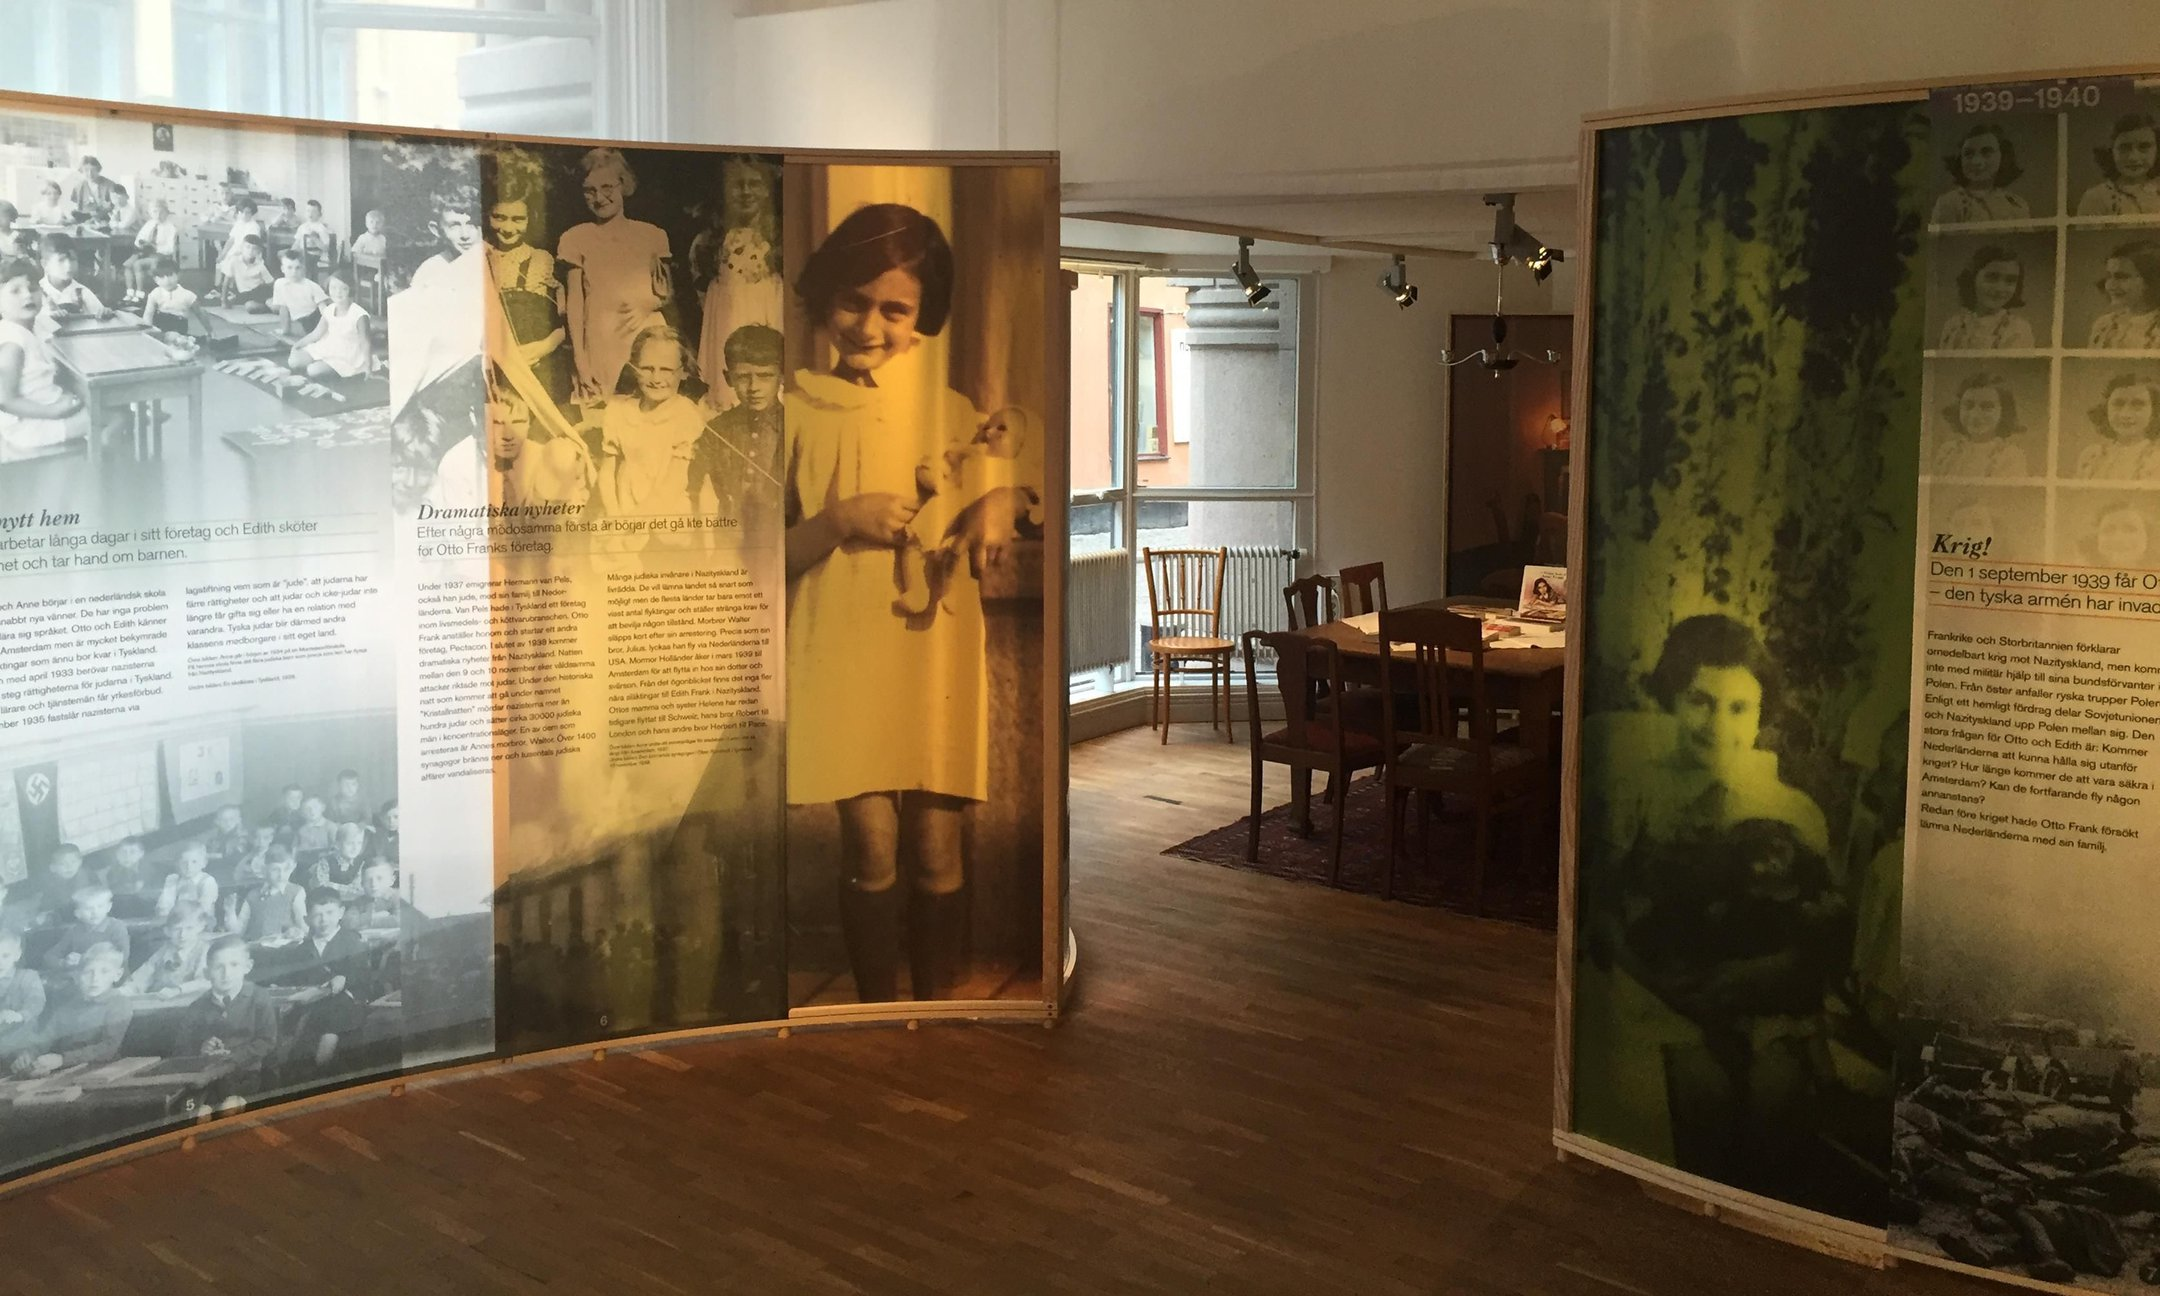 The Anne Frank exhibition in The Living History Forum in Stockholm (February 2016)